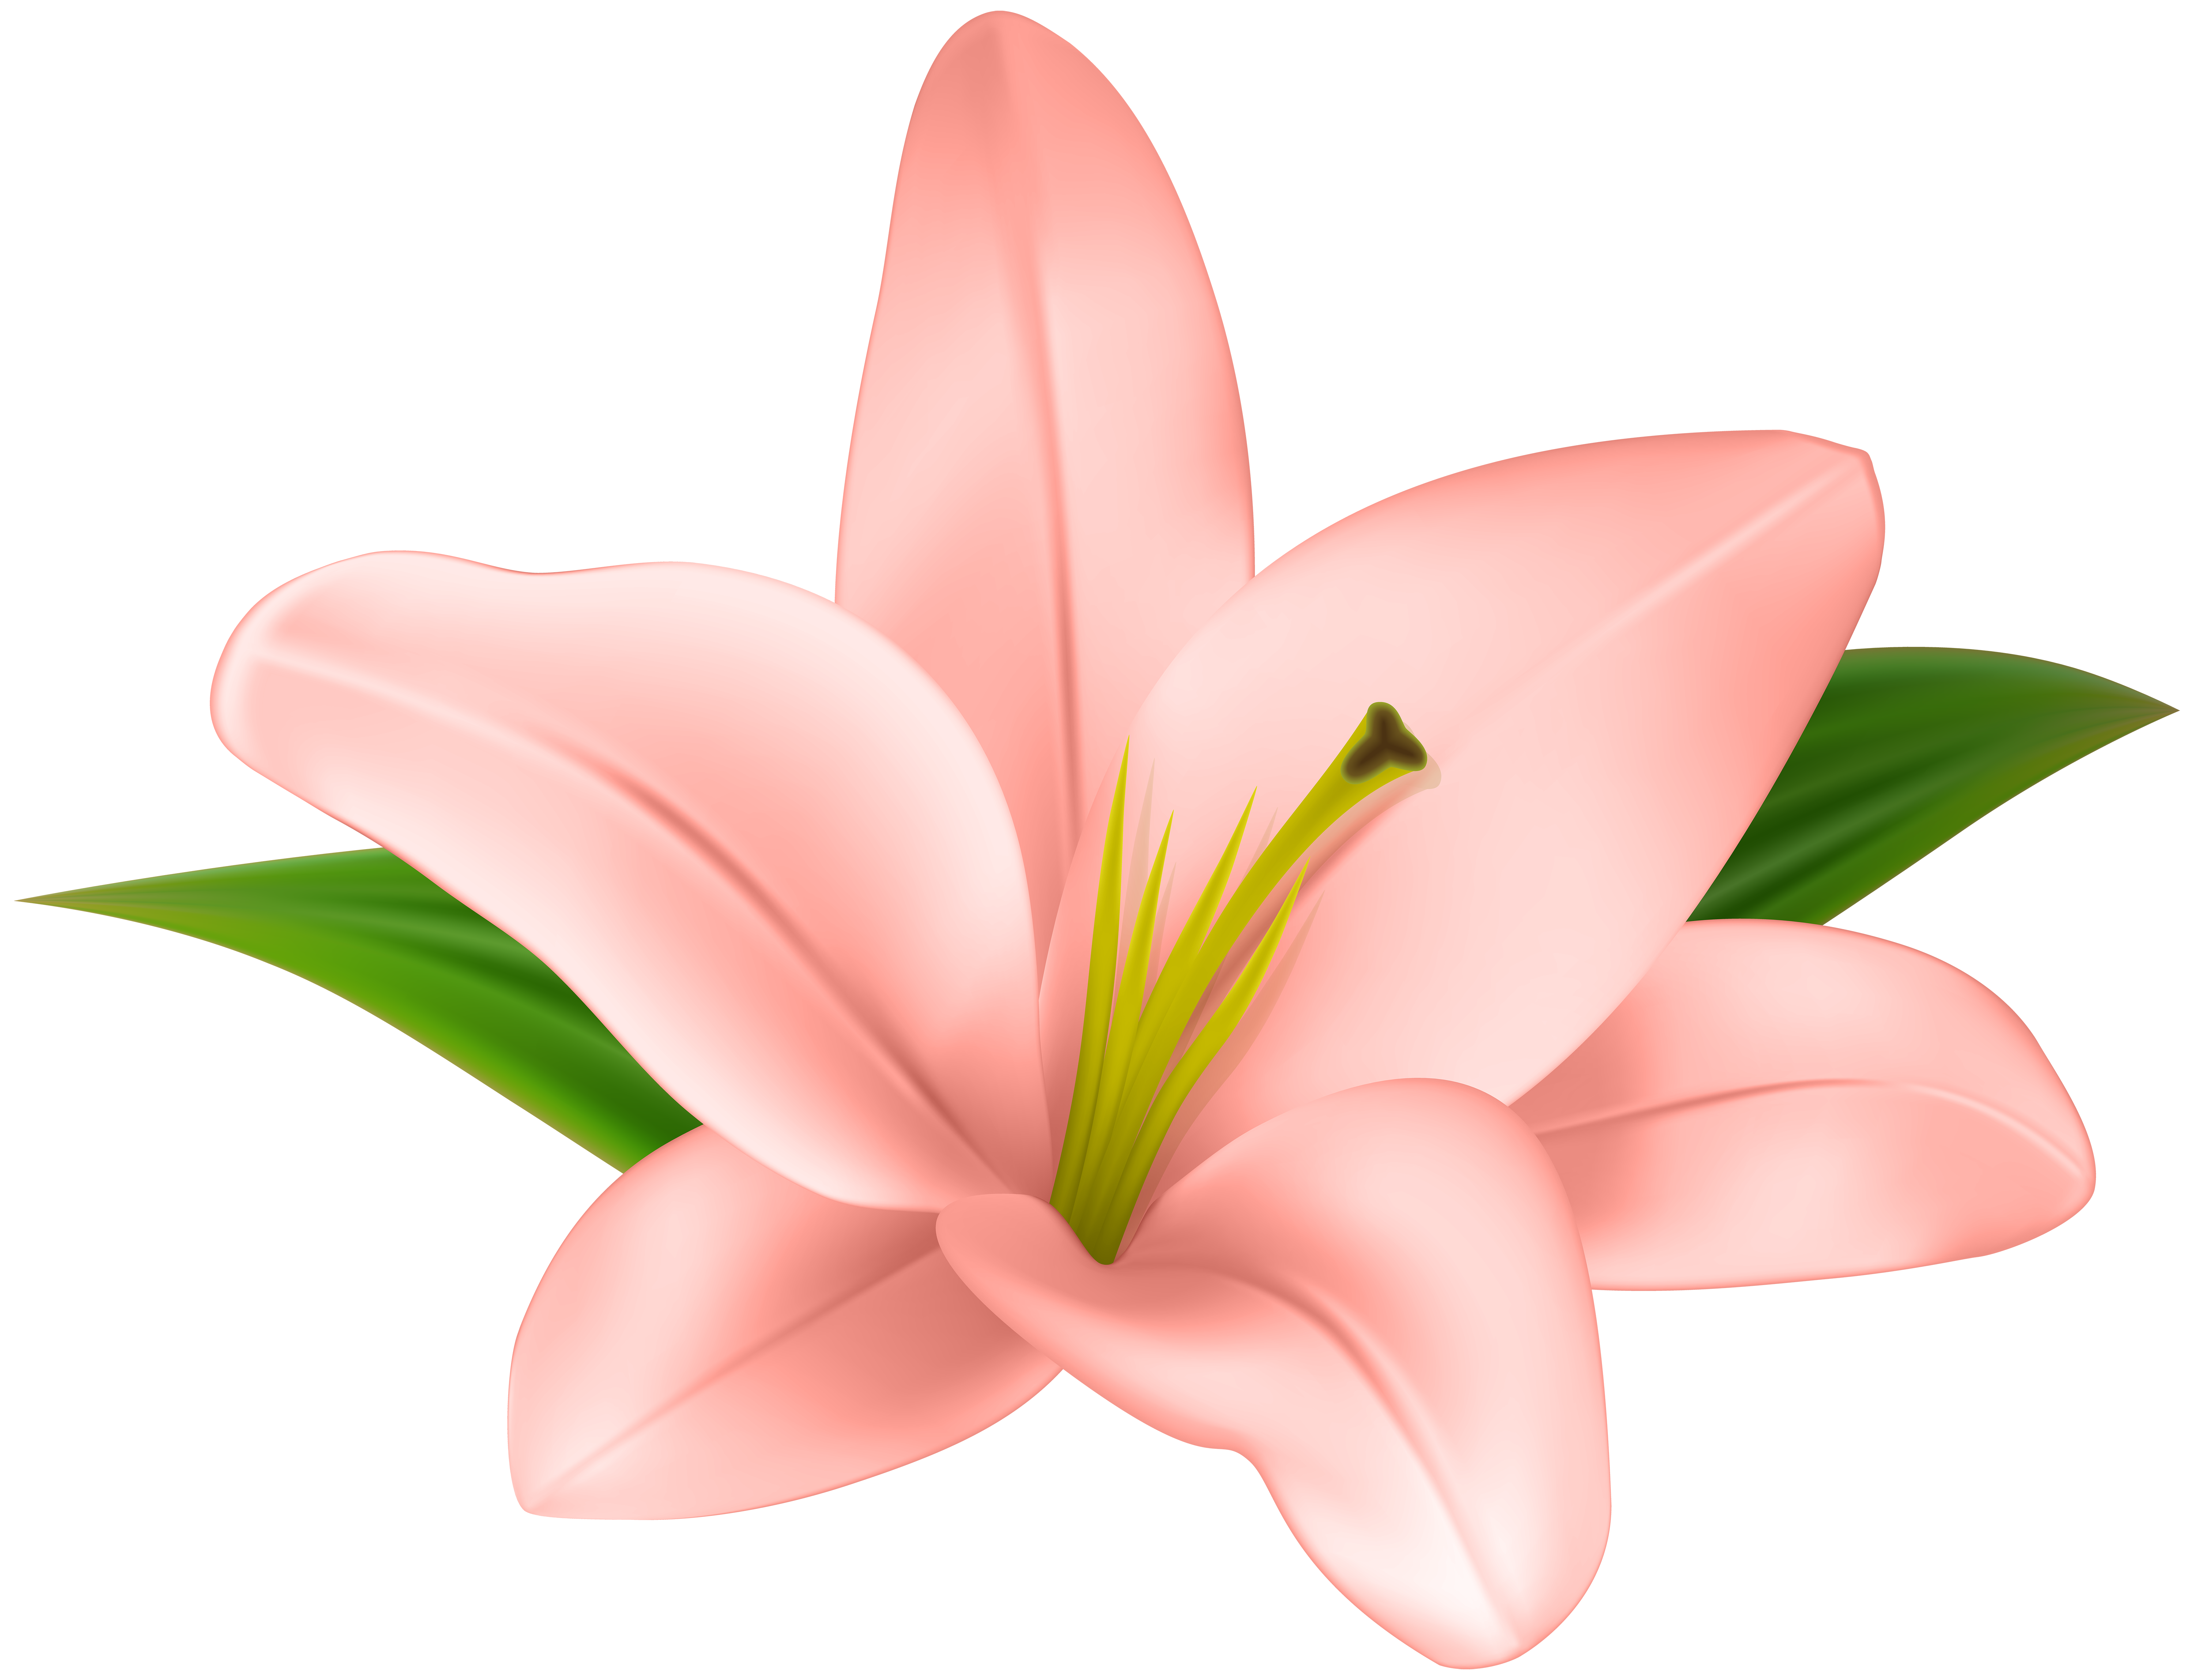 Transparent grave flower clipart. Stargazer lily at getdrawings